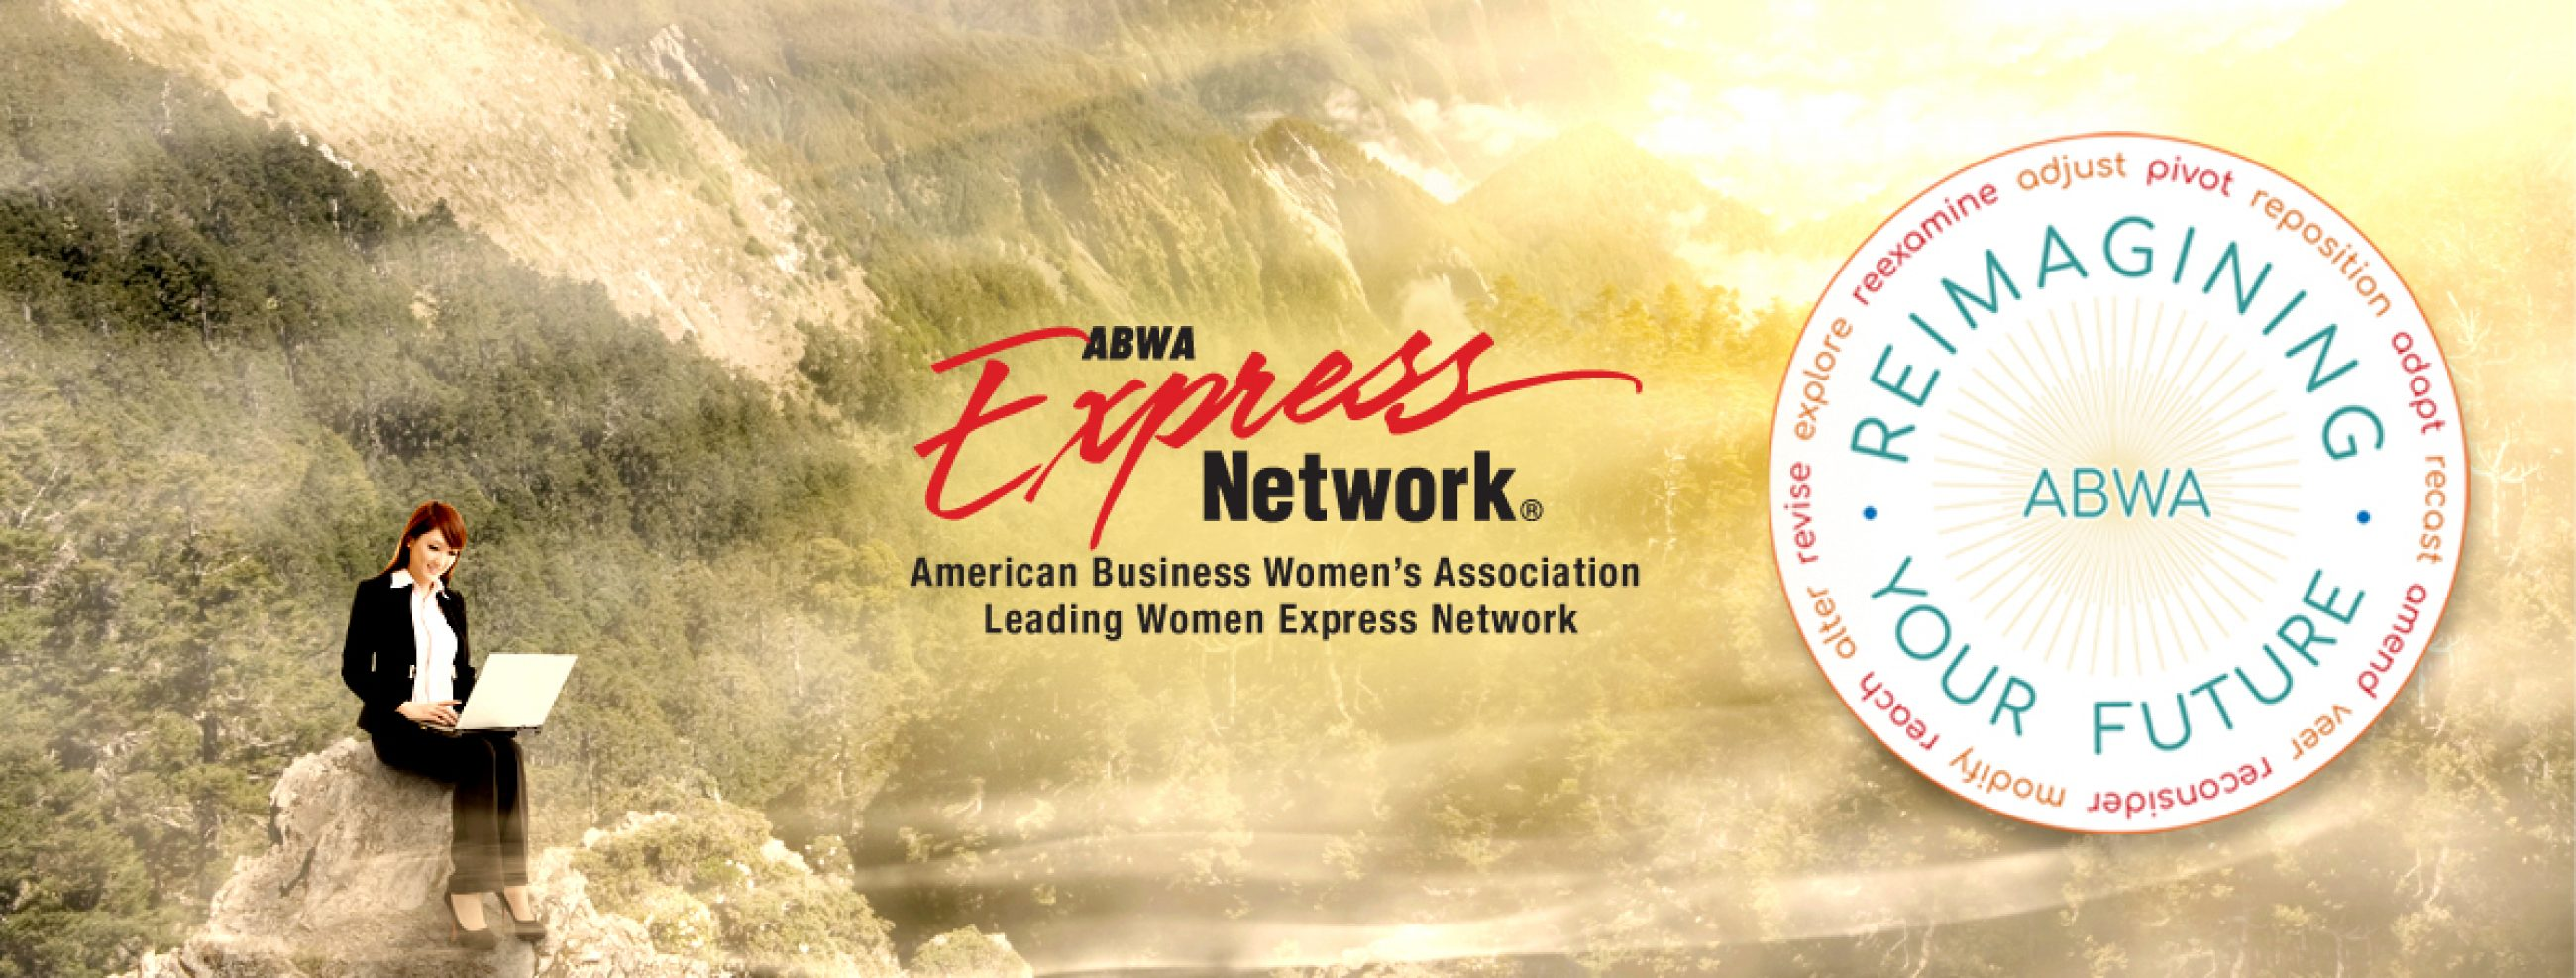 Leading Women's Express Network